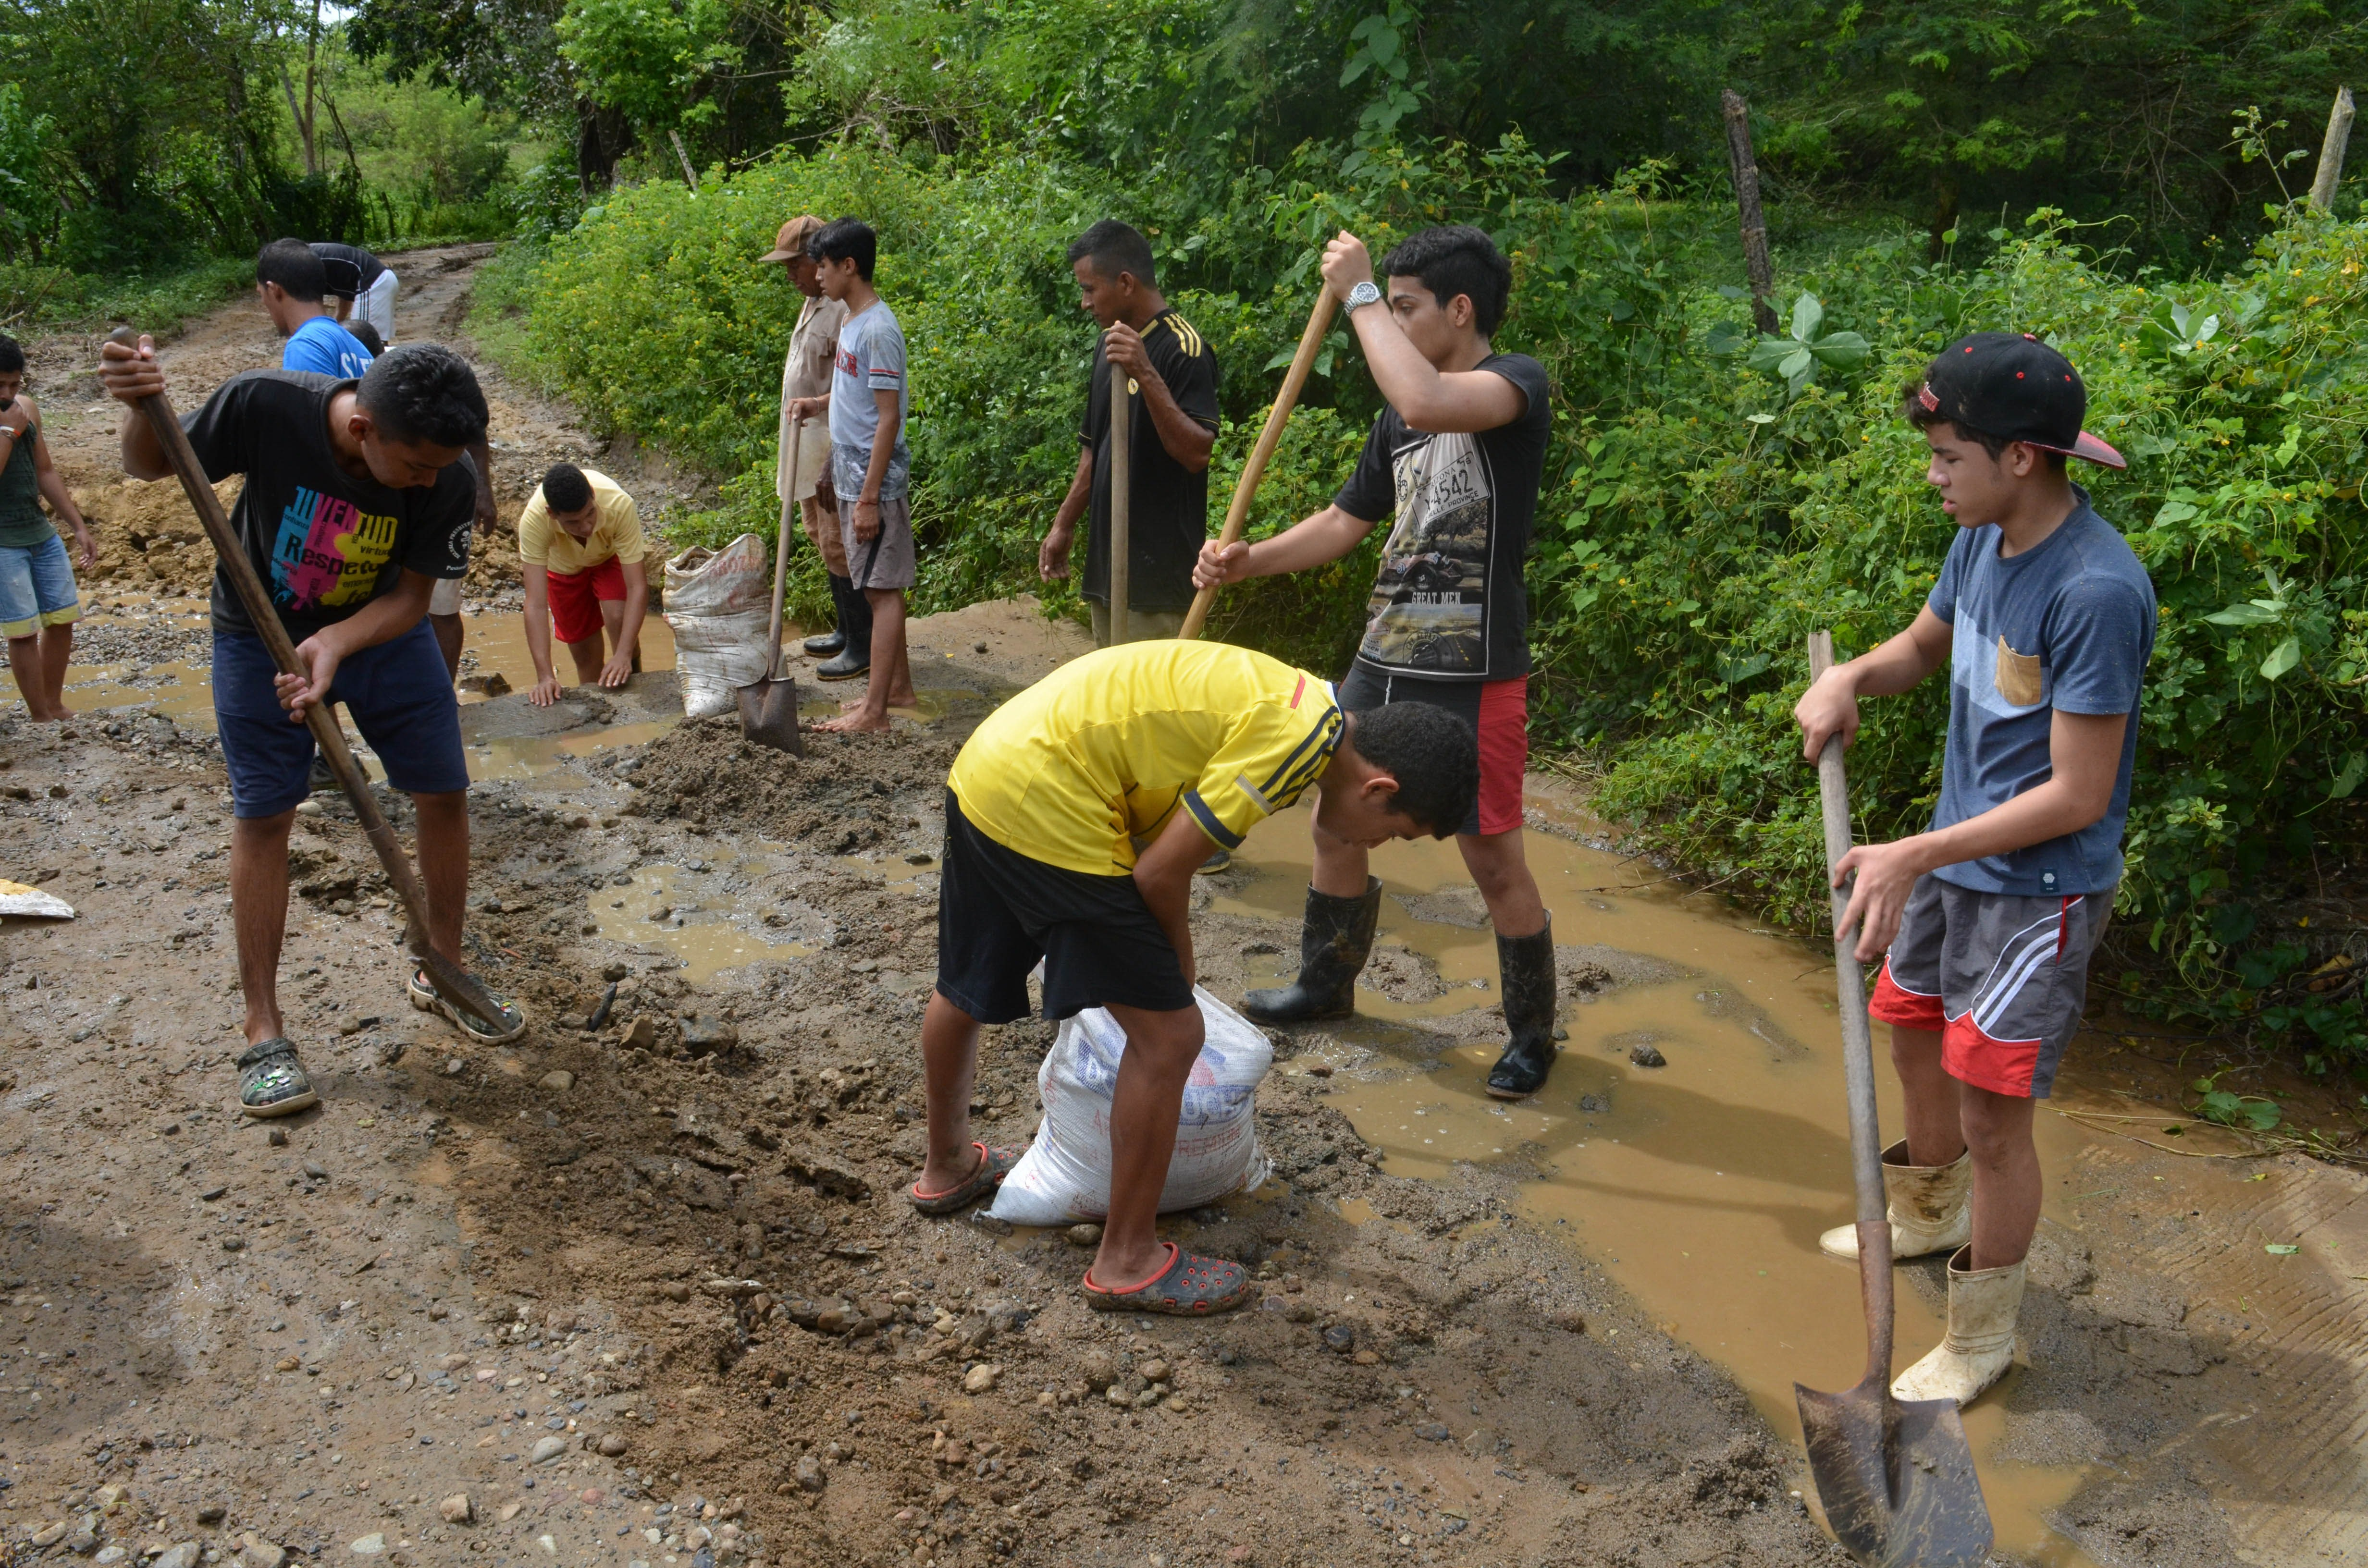 City teens work hard filling in the washed-out road. Credit: Ainsley Herrick